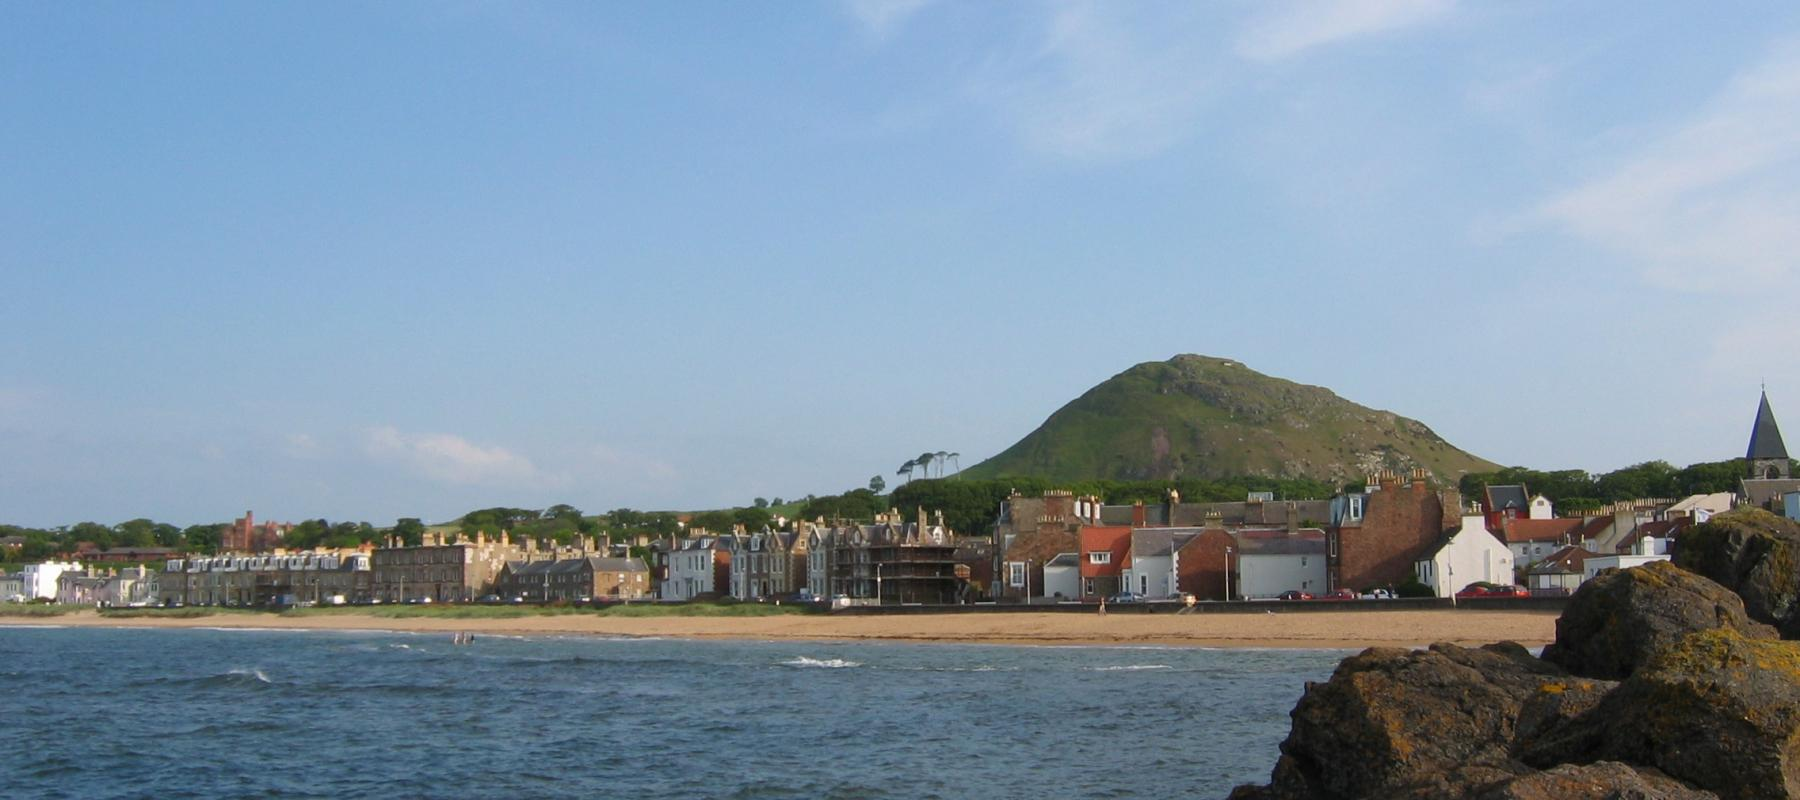 North Berwick Law along the East Lothian Line, Scotland